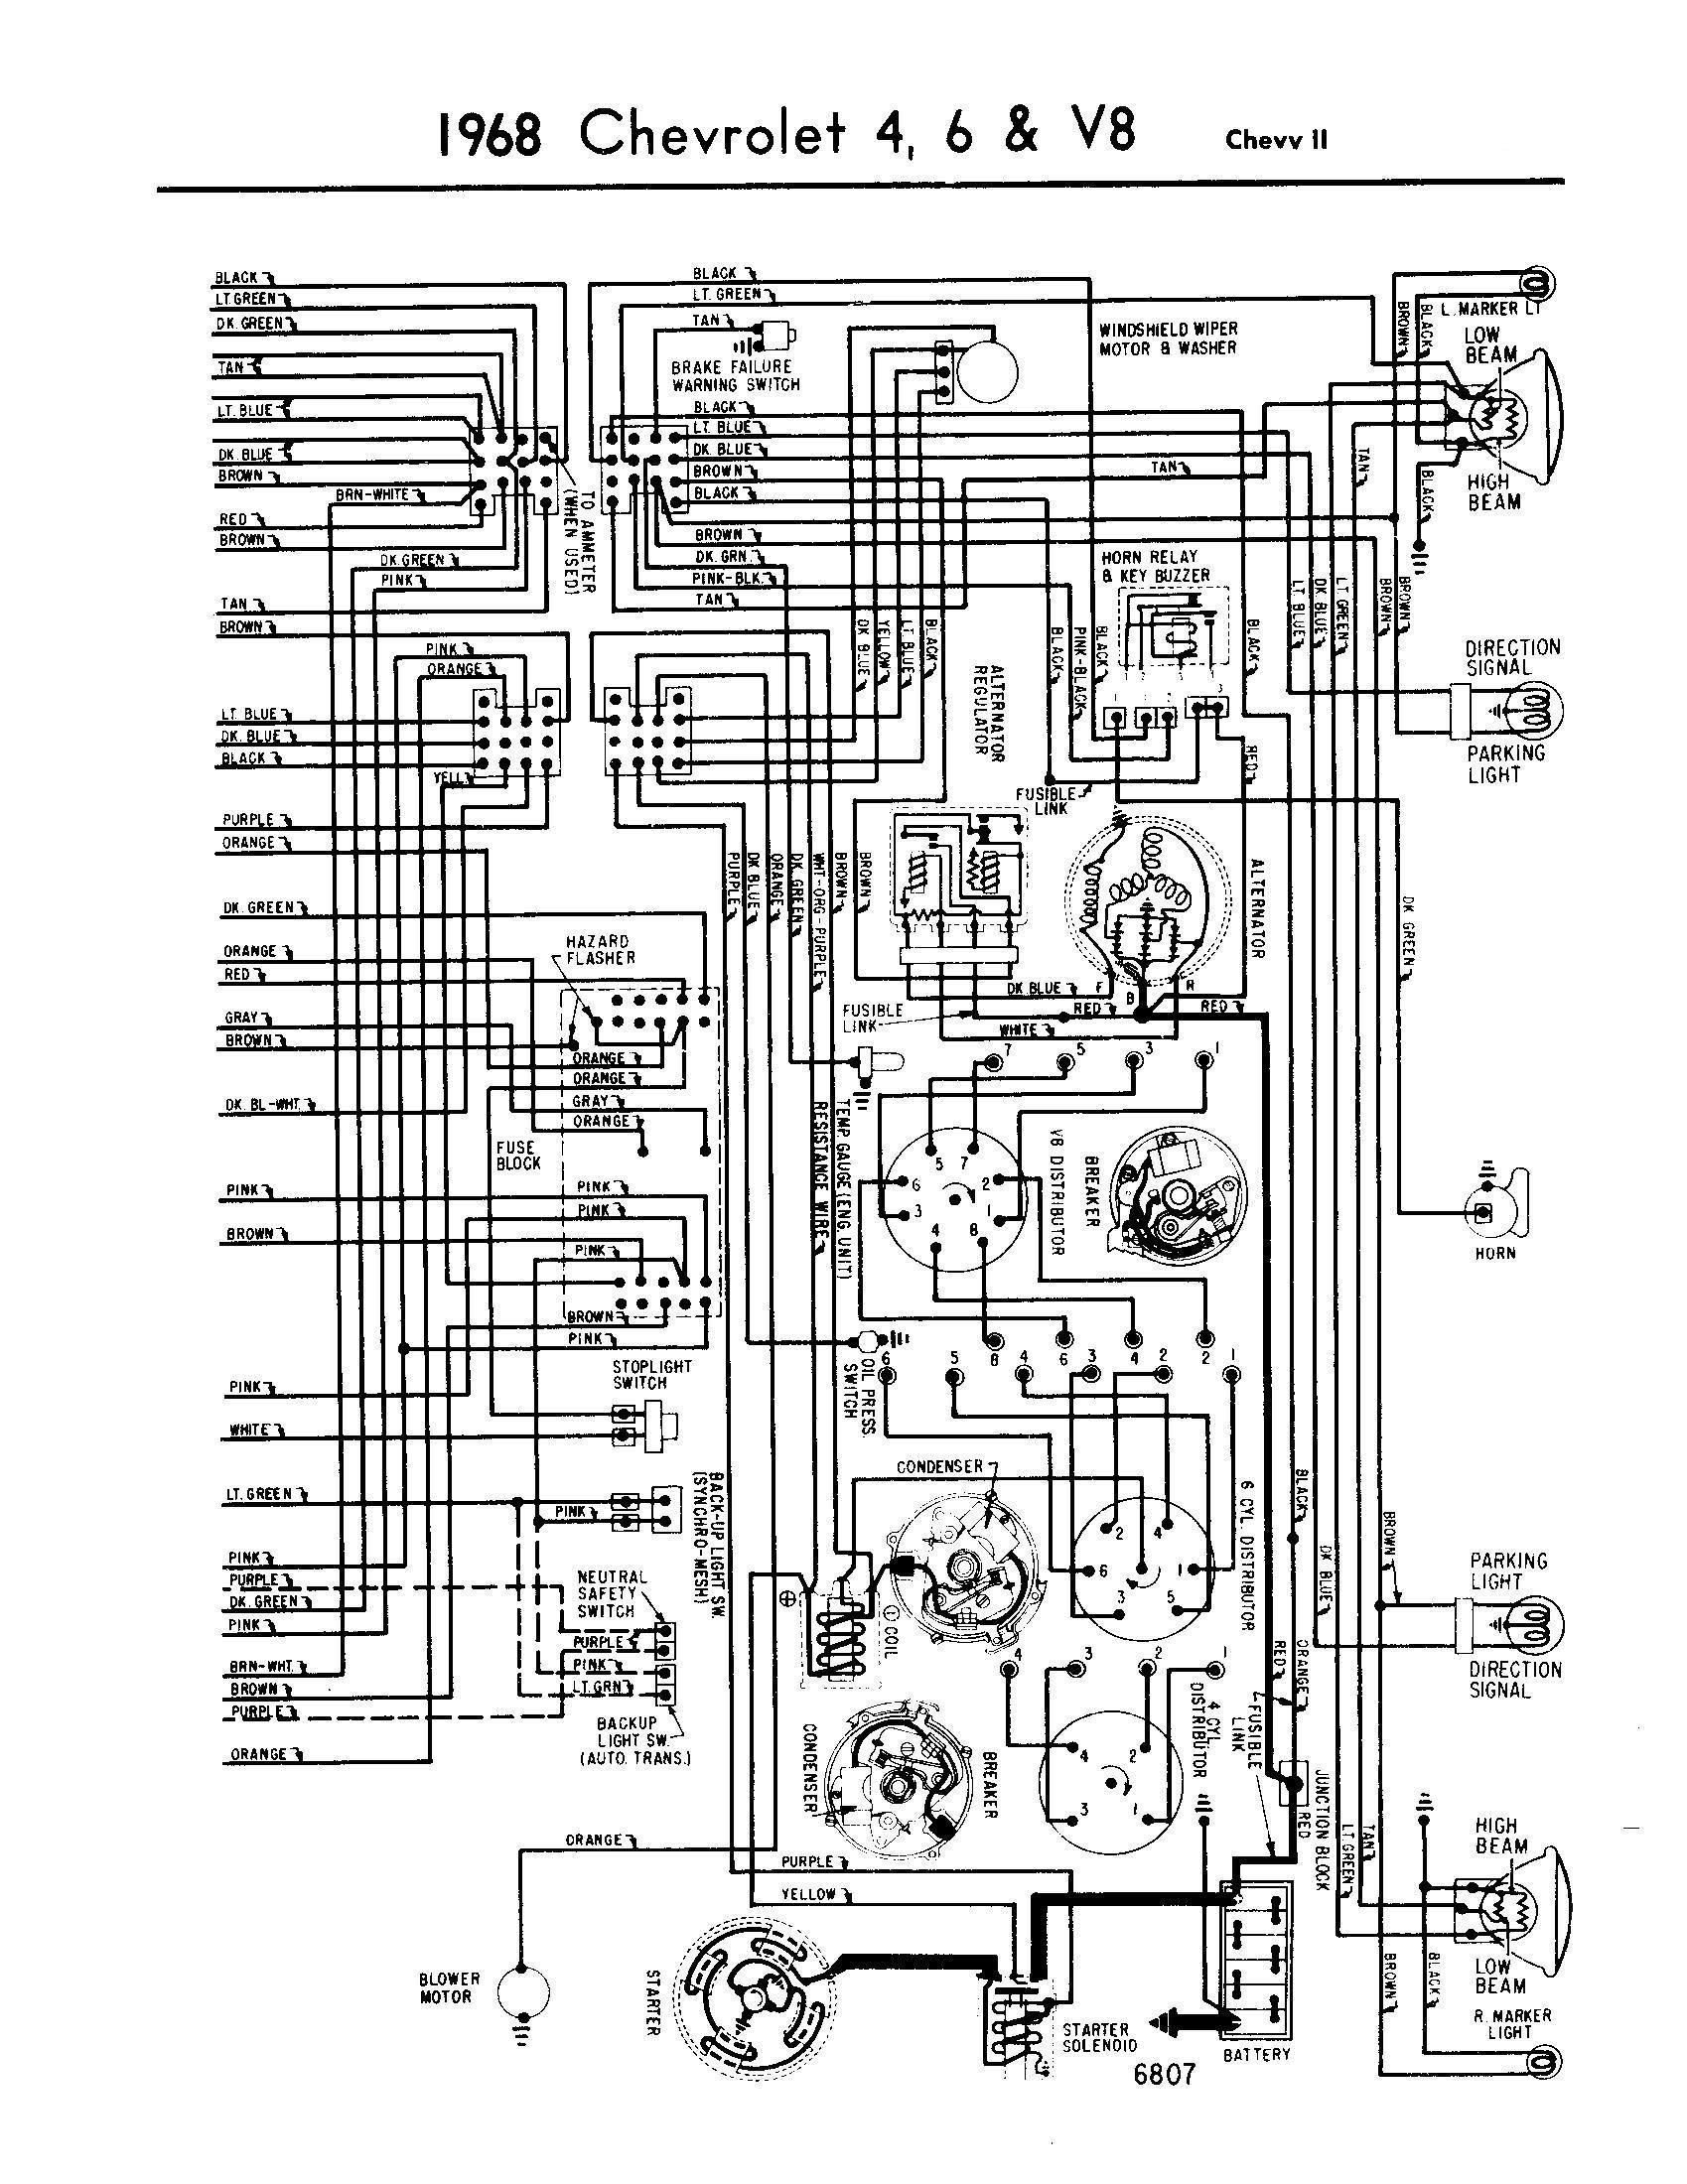 67 Camaro Wiring Diagram 1969 Camaro Wiring Diagram Printable Worksheet and Wiring Diagram • Of 67 Camaro Wiring Diagram